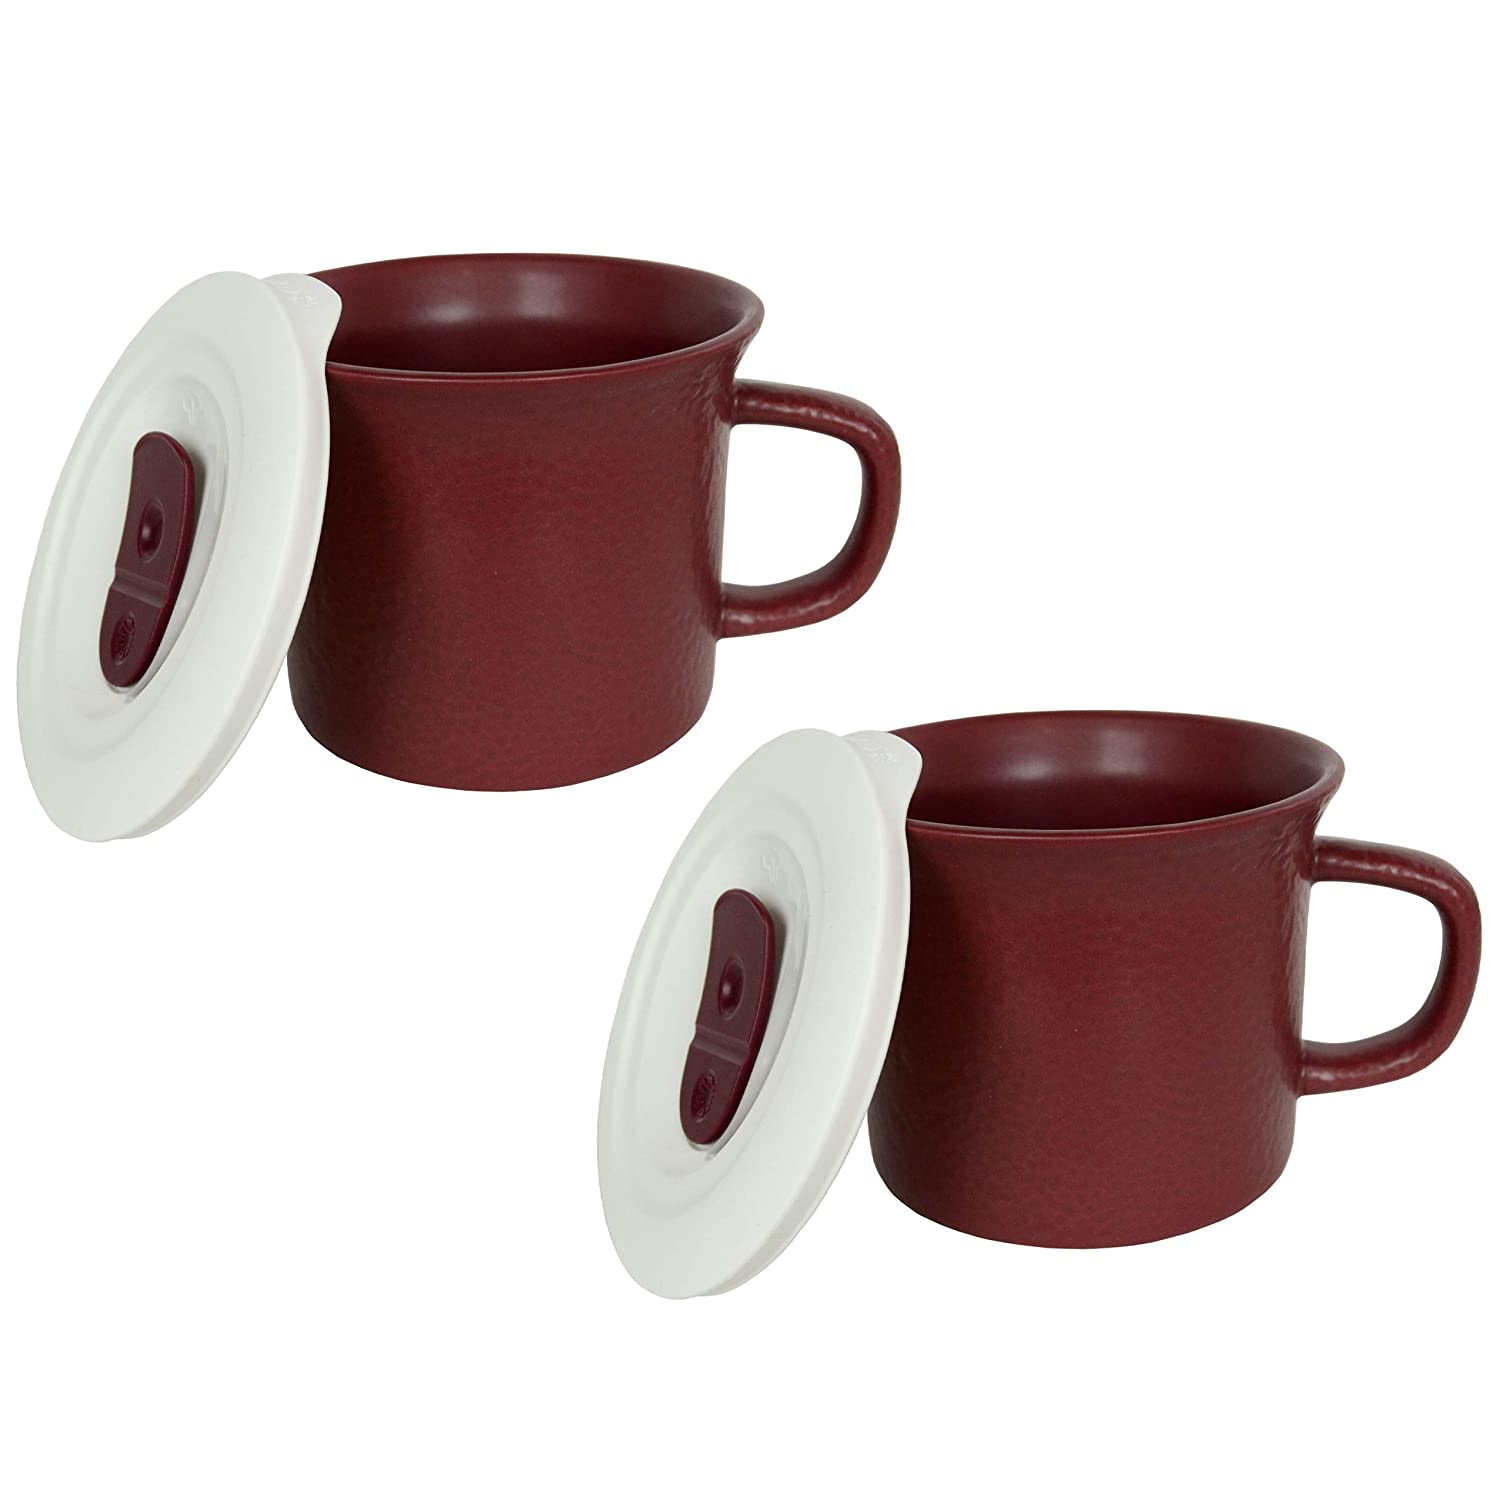 Corningware 20 Ounce Hammered Maroon Meal Mug With Vented Lid – 2 Pack